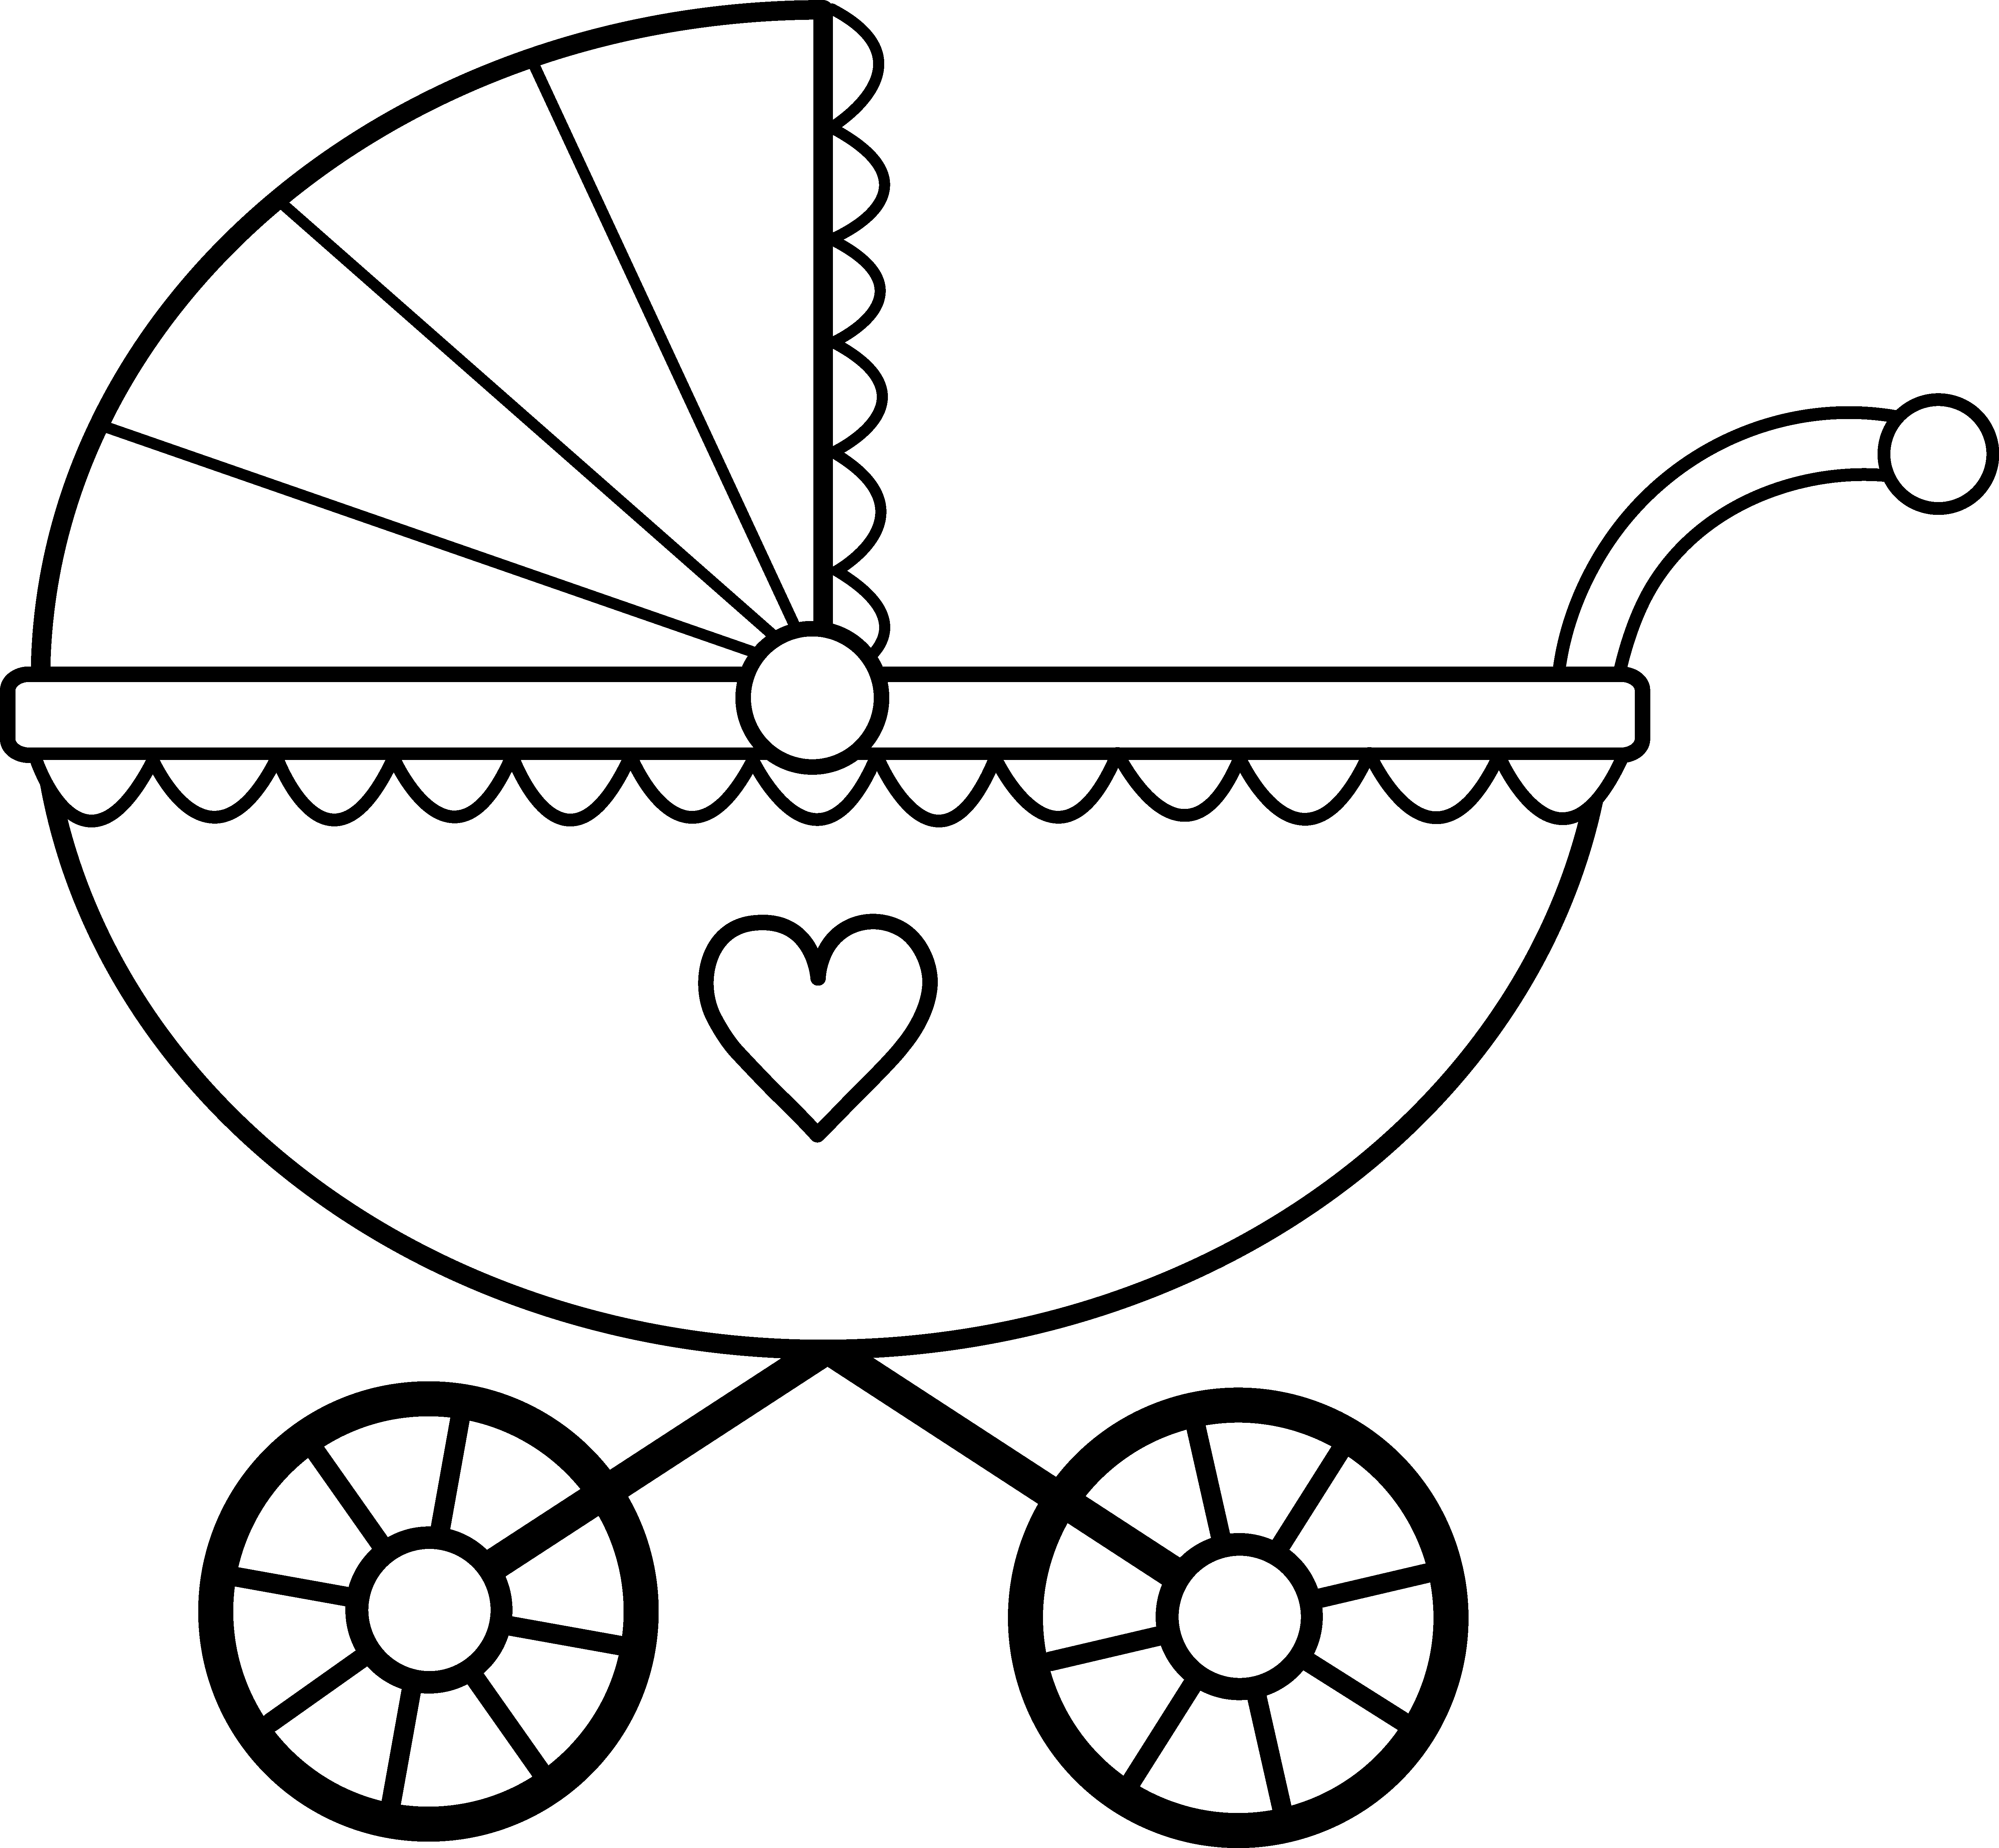 Baby Carriage Line Art.